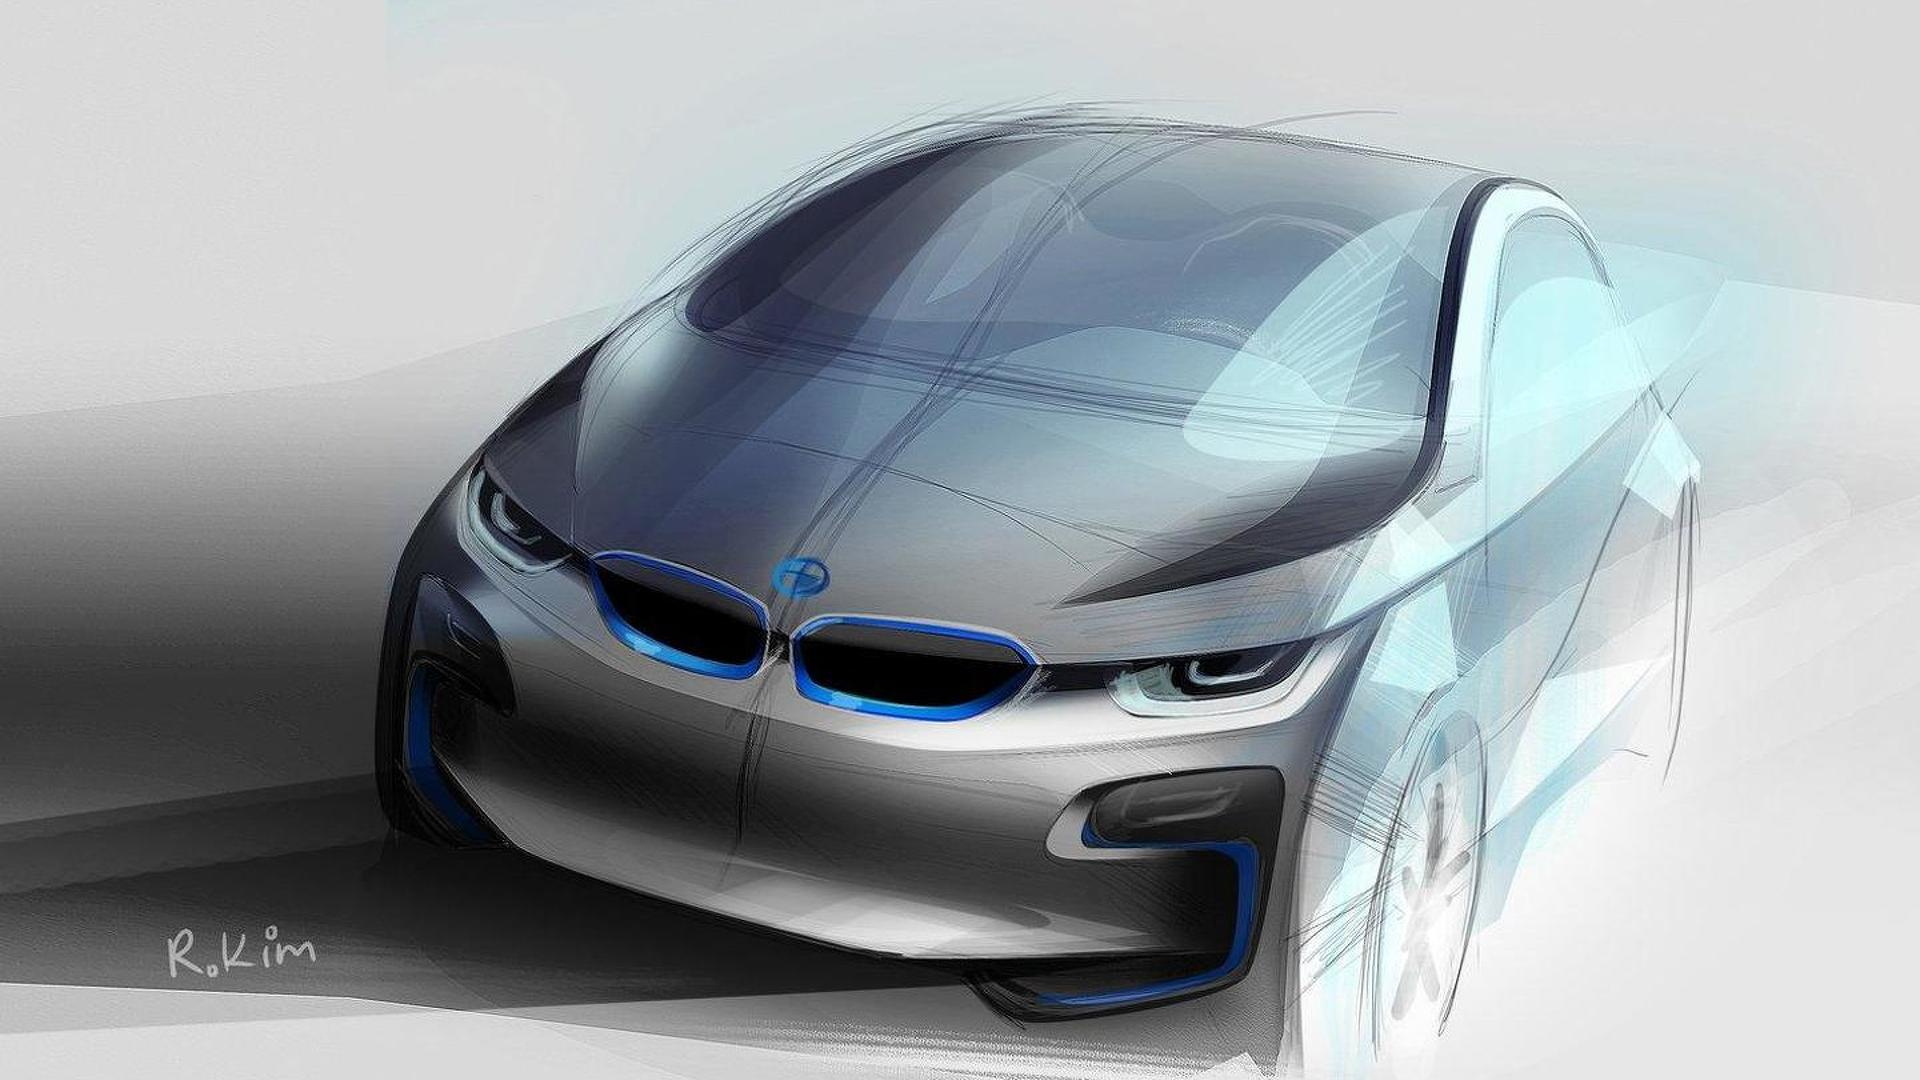 BMW i5 due in 2015 - report